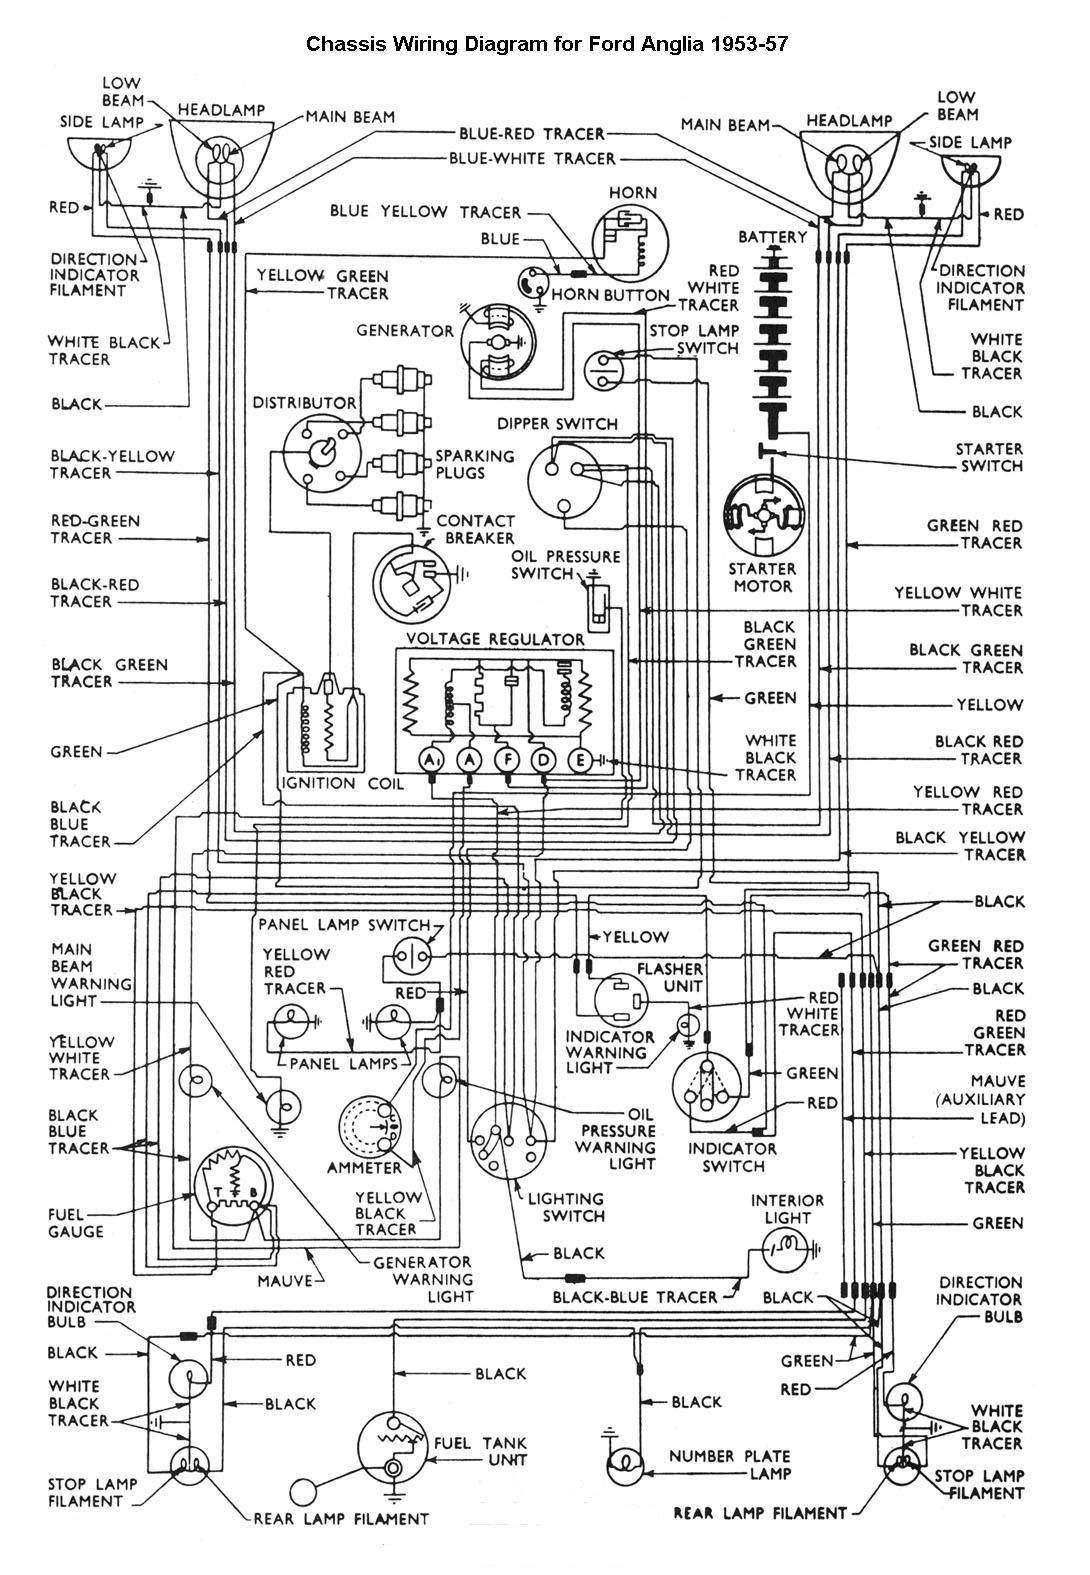 medium resolution of car wiring diagram mech truck repair cars motor carcar wiring diagram